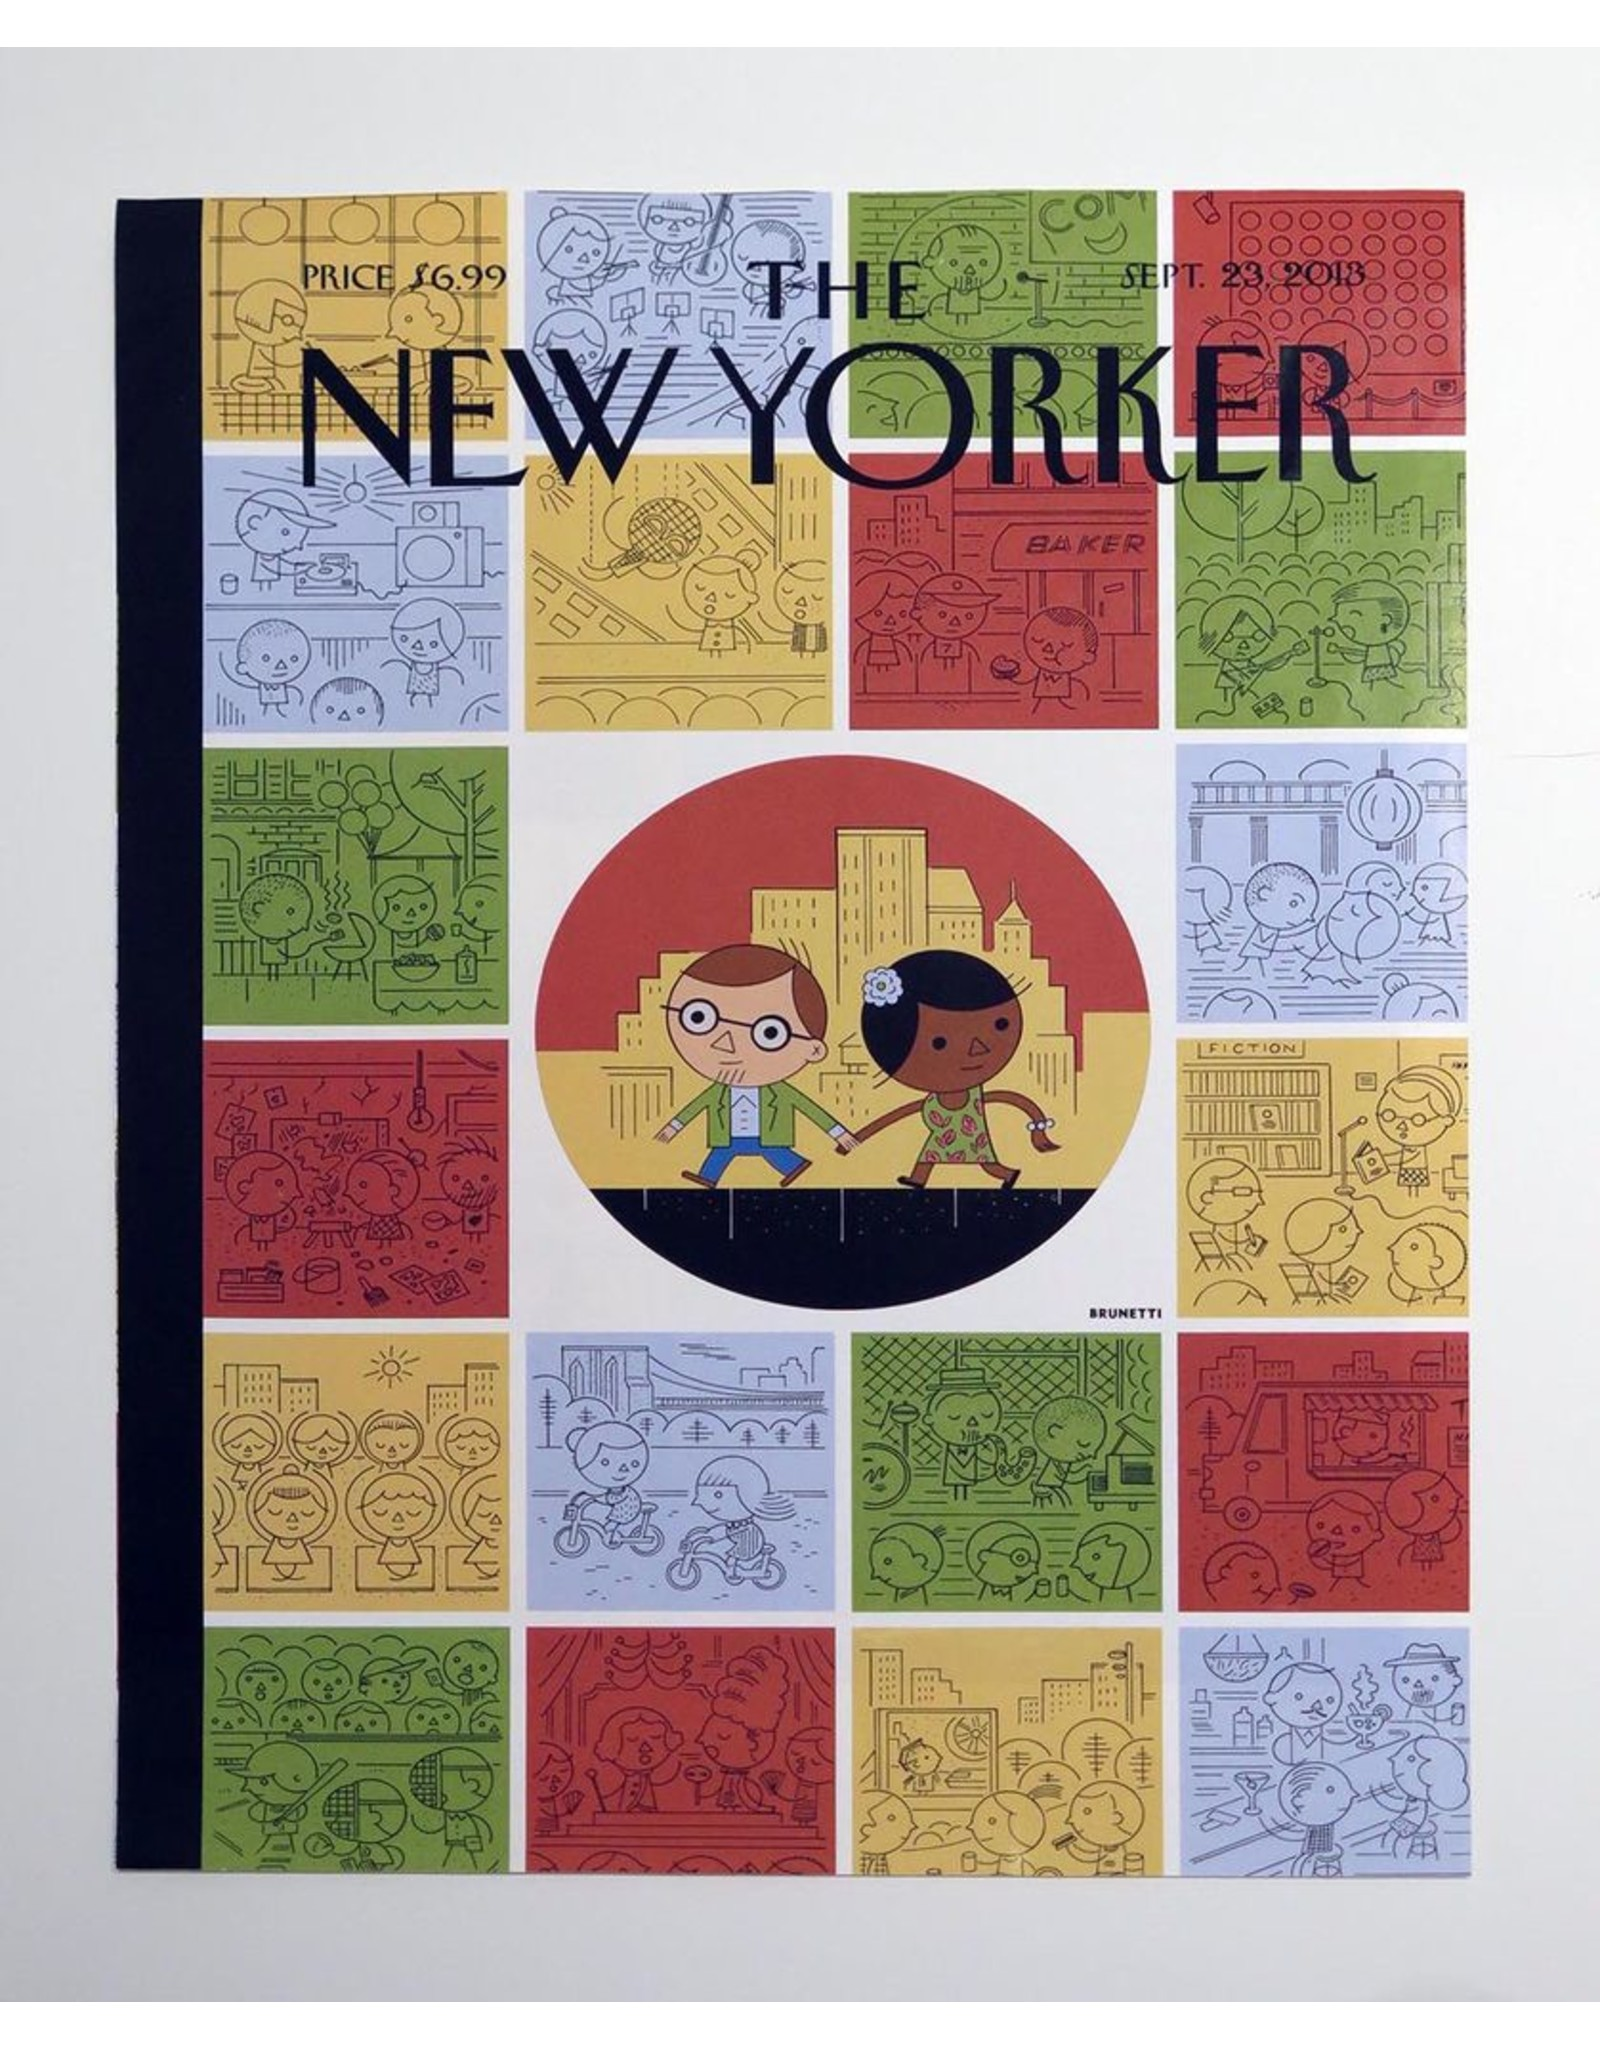 Ivan Brunetti Opera, Illustration by Ivan Brunetti for the New Yorker, Goings On About Town, September 12, 2013